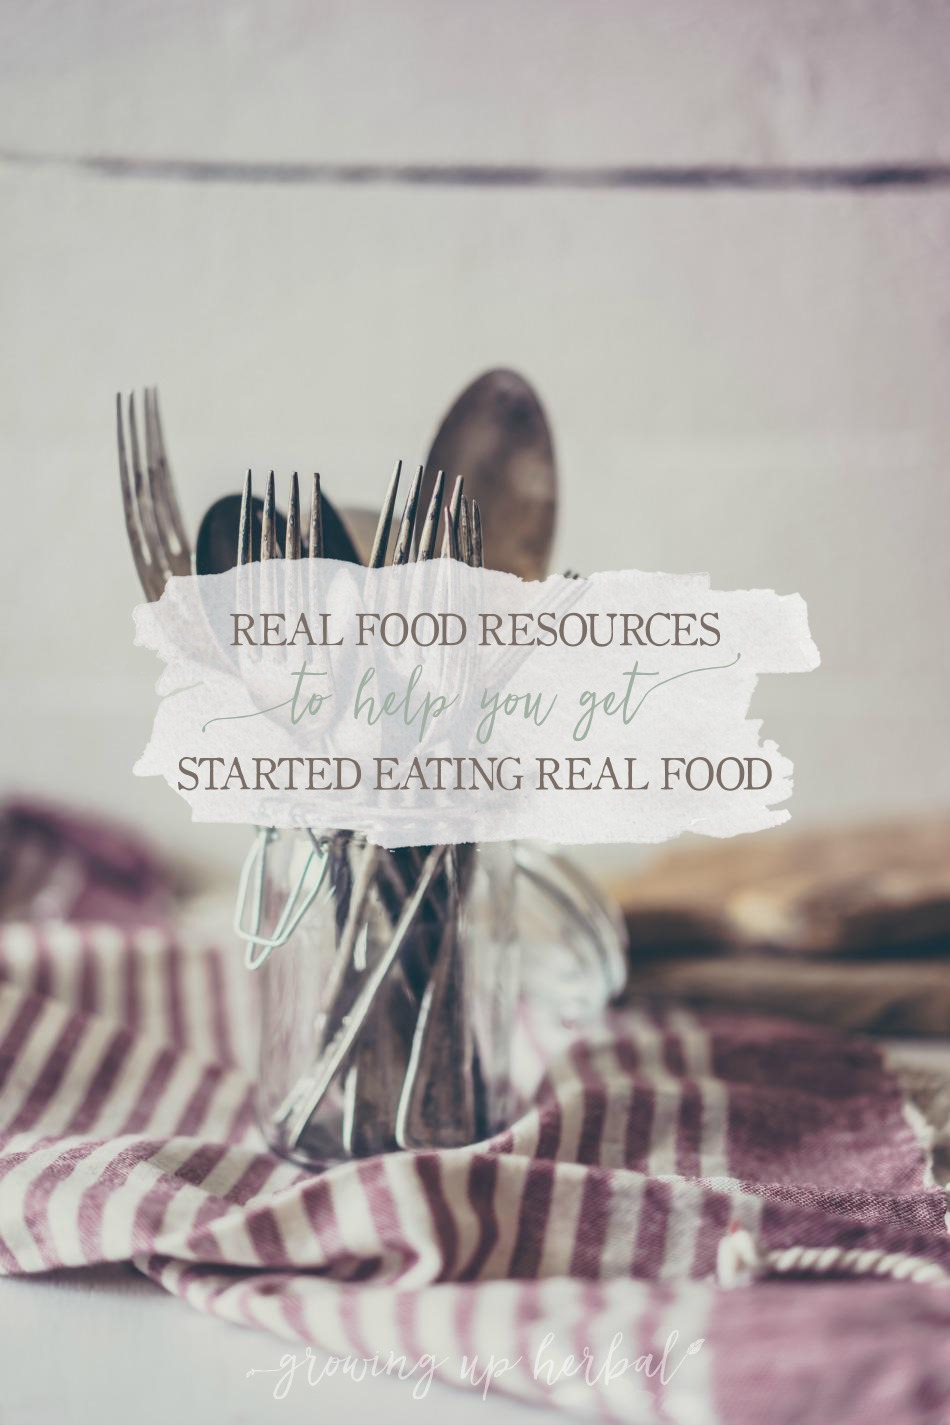 Real Food Resources To Help You Get Started Eating Real Food | Growing Up Herbal | Looking for more resources to help you make the switch to real food? Look no more. I have curated some great ones right here!